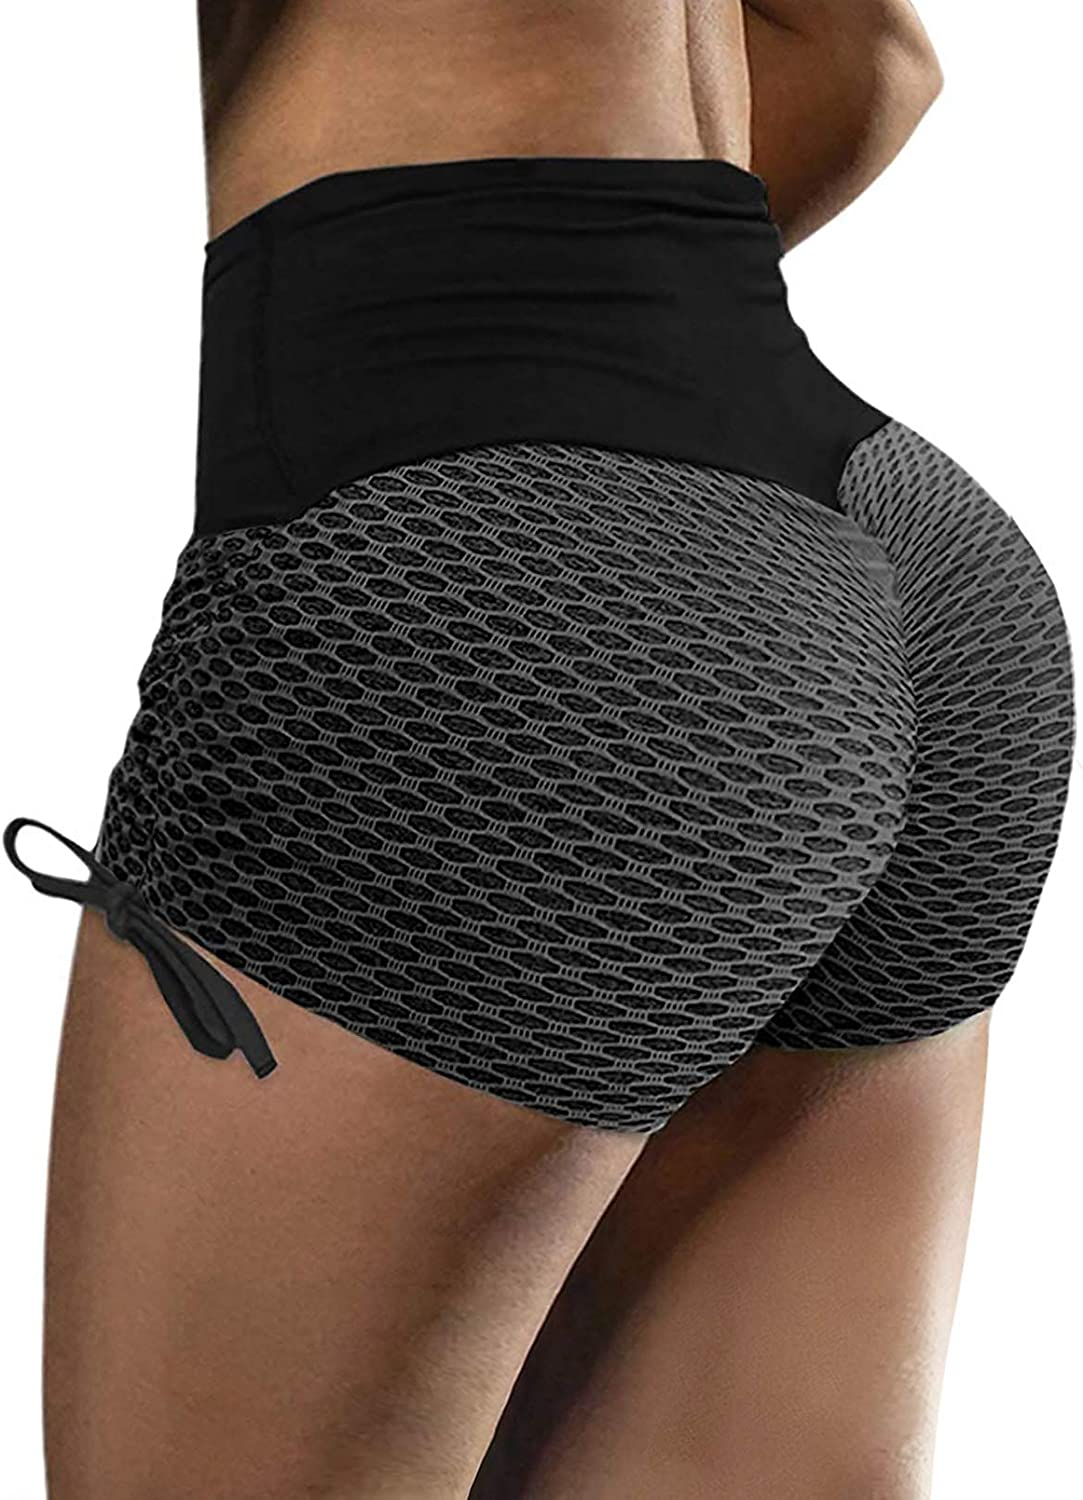 Sidefeel Super Special SALE held Women High Waist Butt Mesh At the price Shorts Drawstri Lifting Side